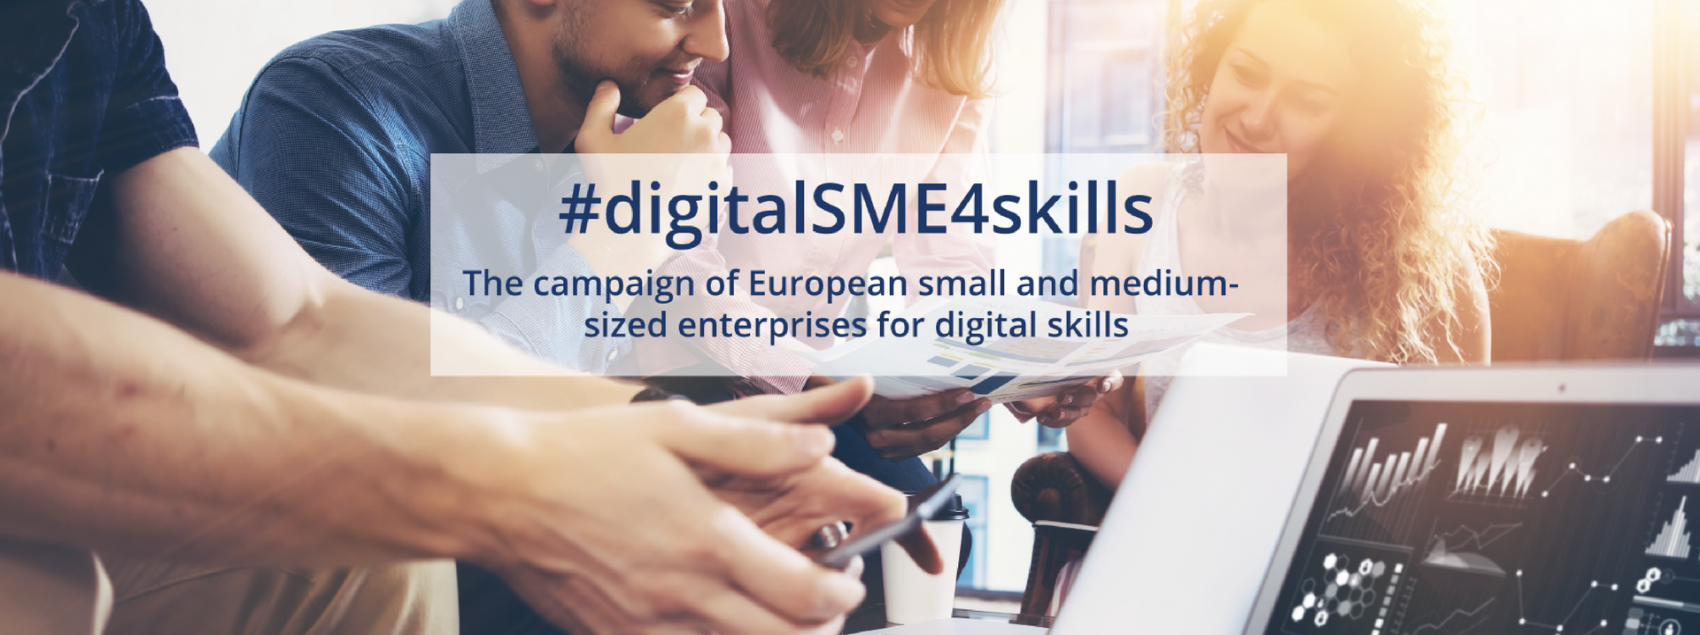 EU-Initiative #DigitalSME4skills